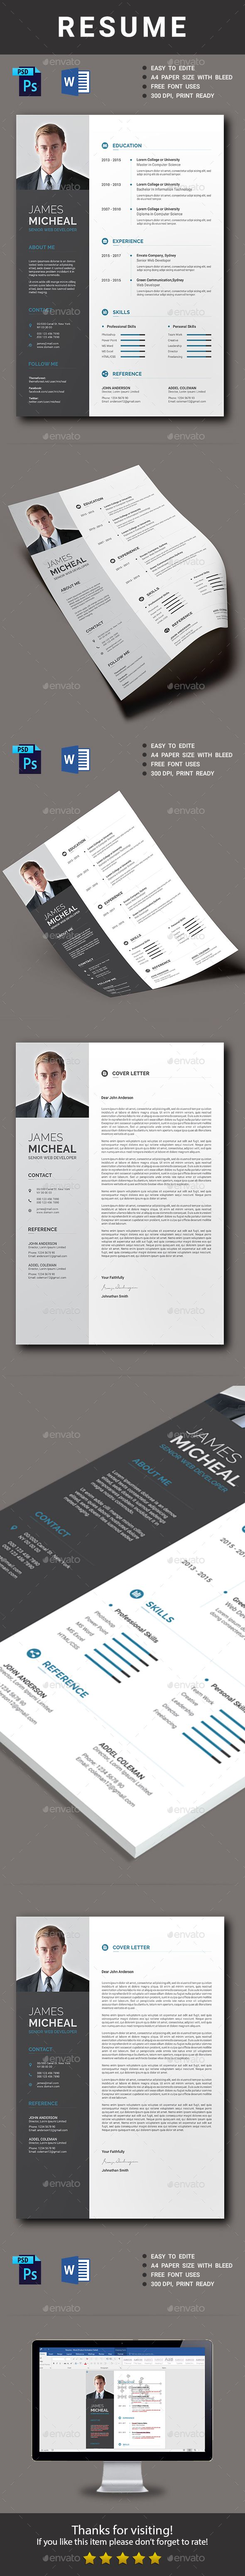 Resume Cv Templates Free Download%0A Usa Time Zones And Map